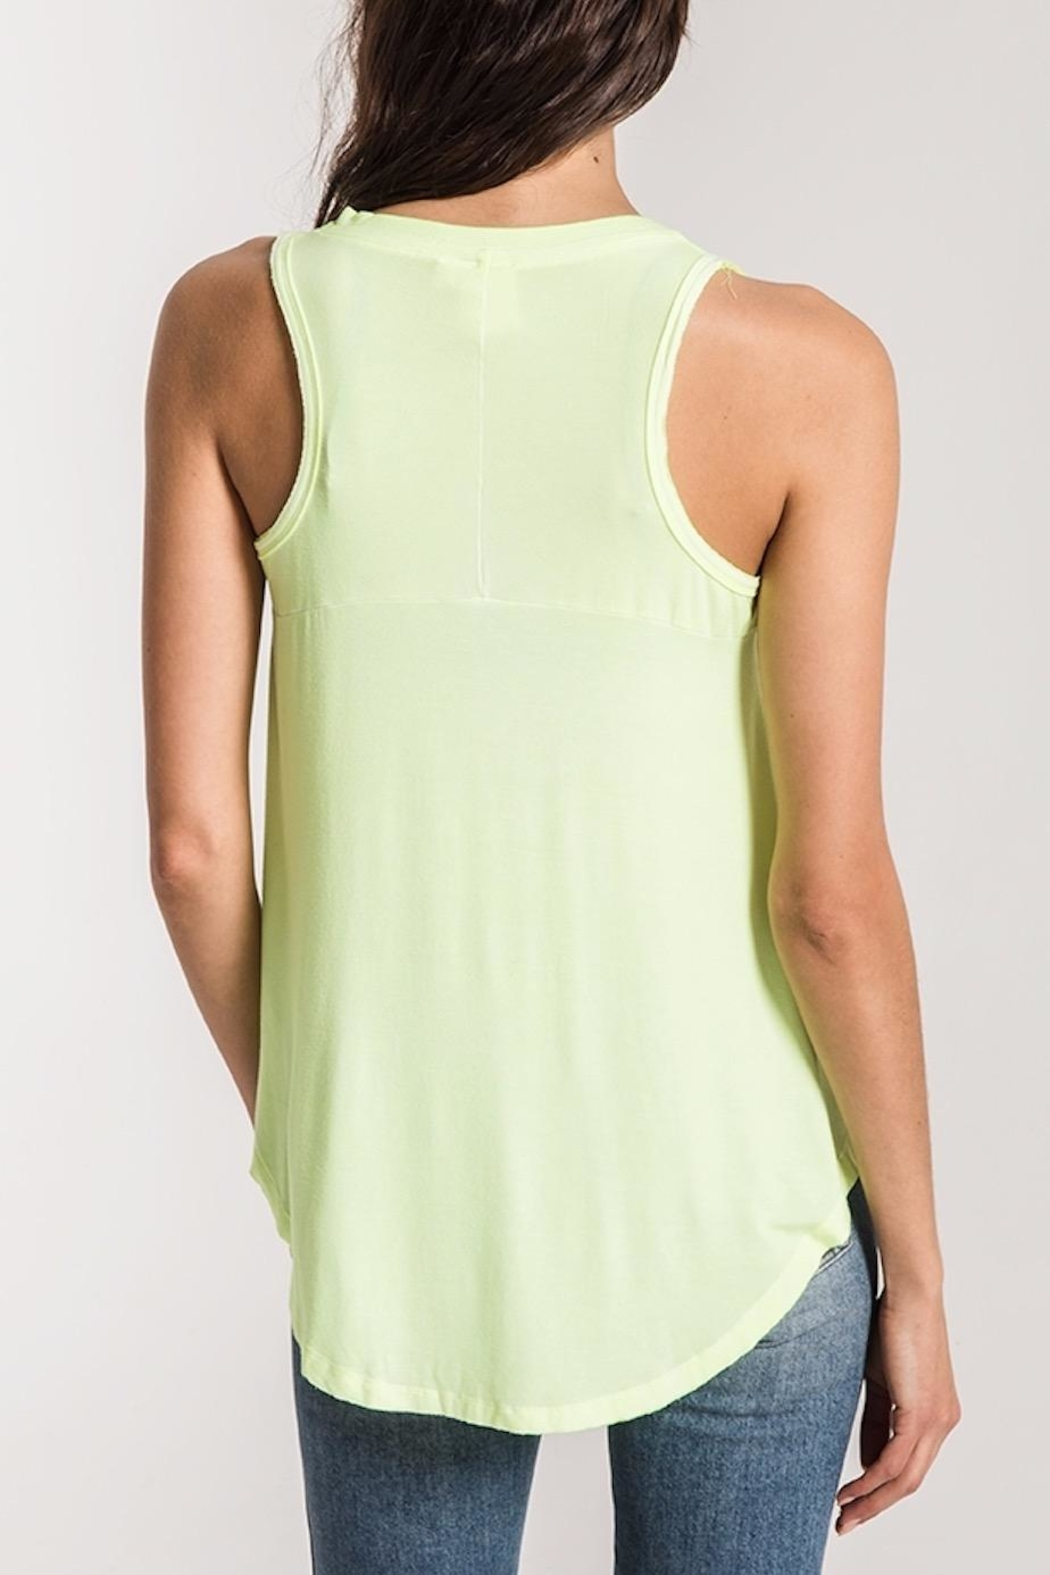 z supply Neon Lime Tank - Front Full Image